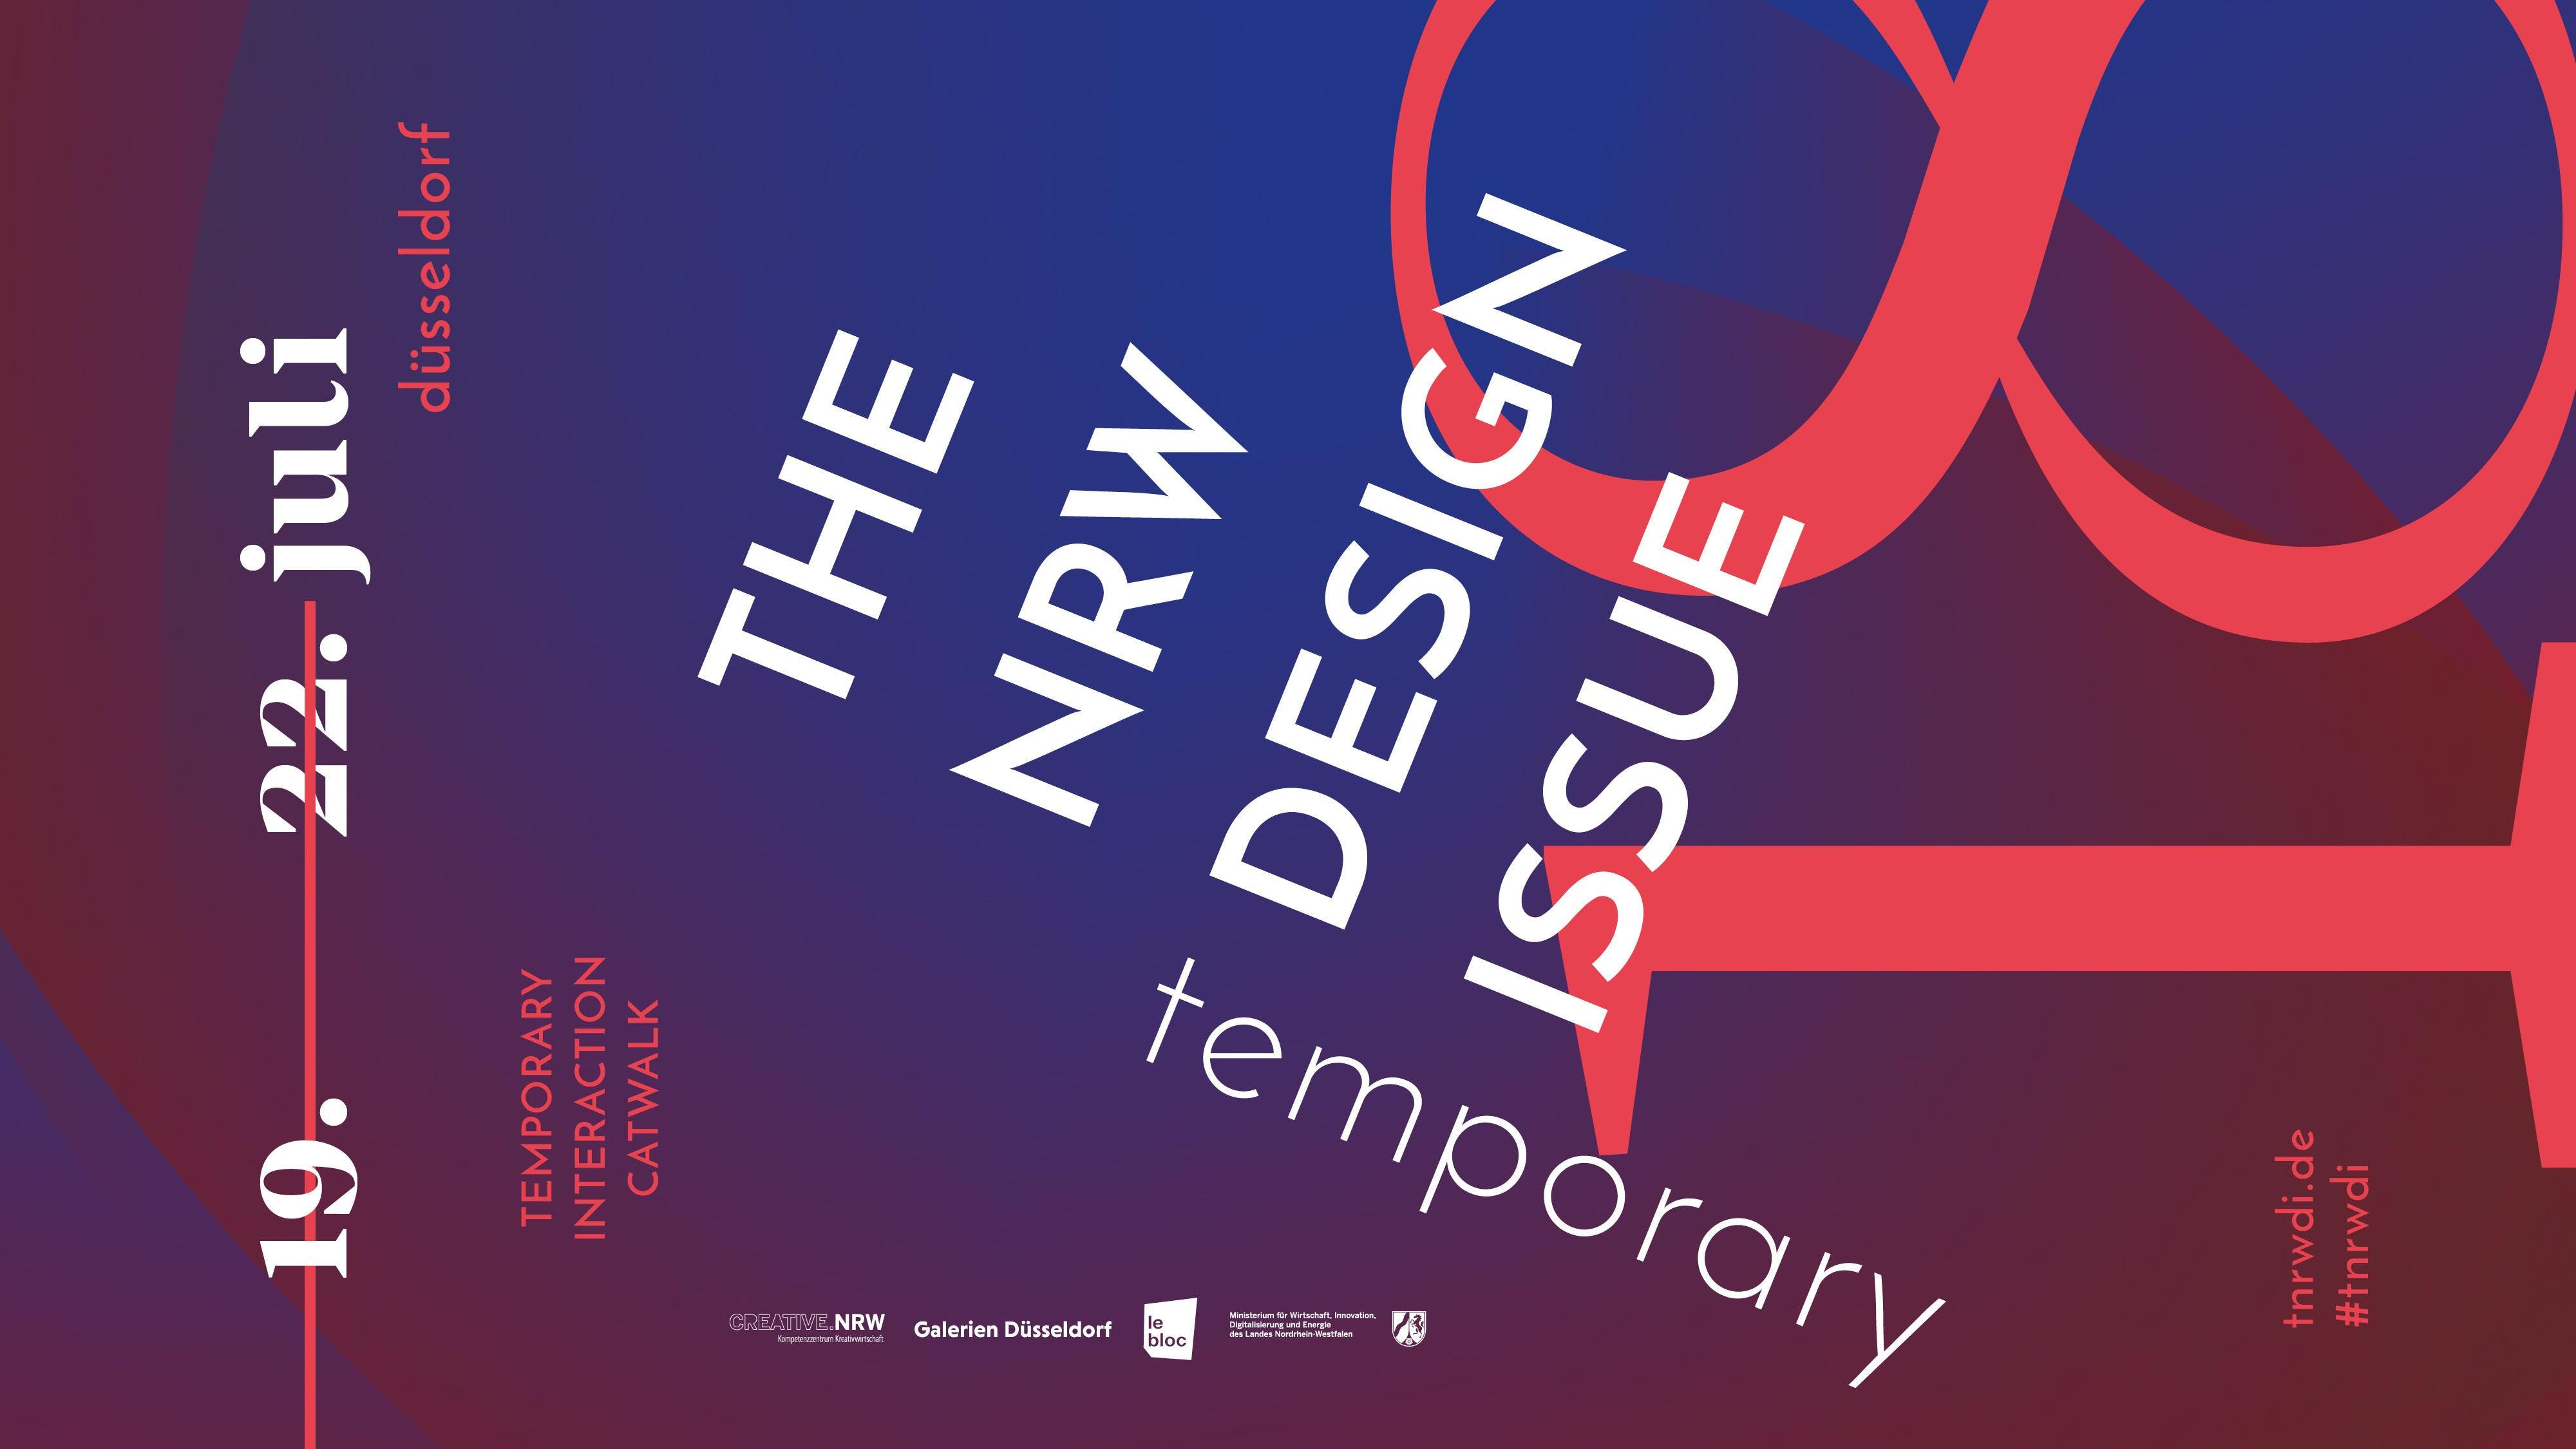 THE NRW DESIGN ISSUE / TEMPORARY